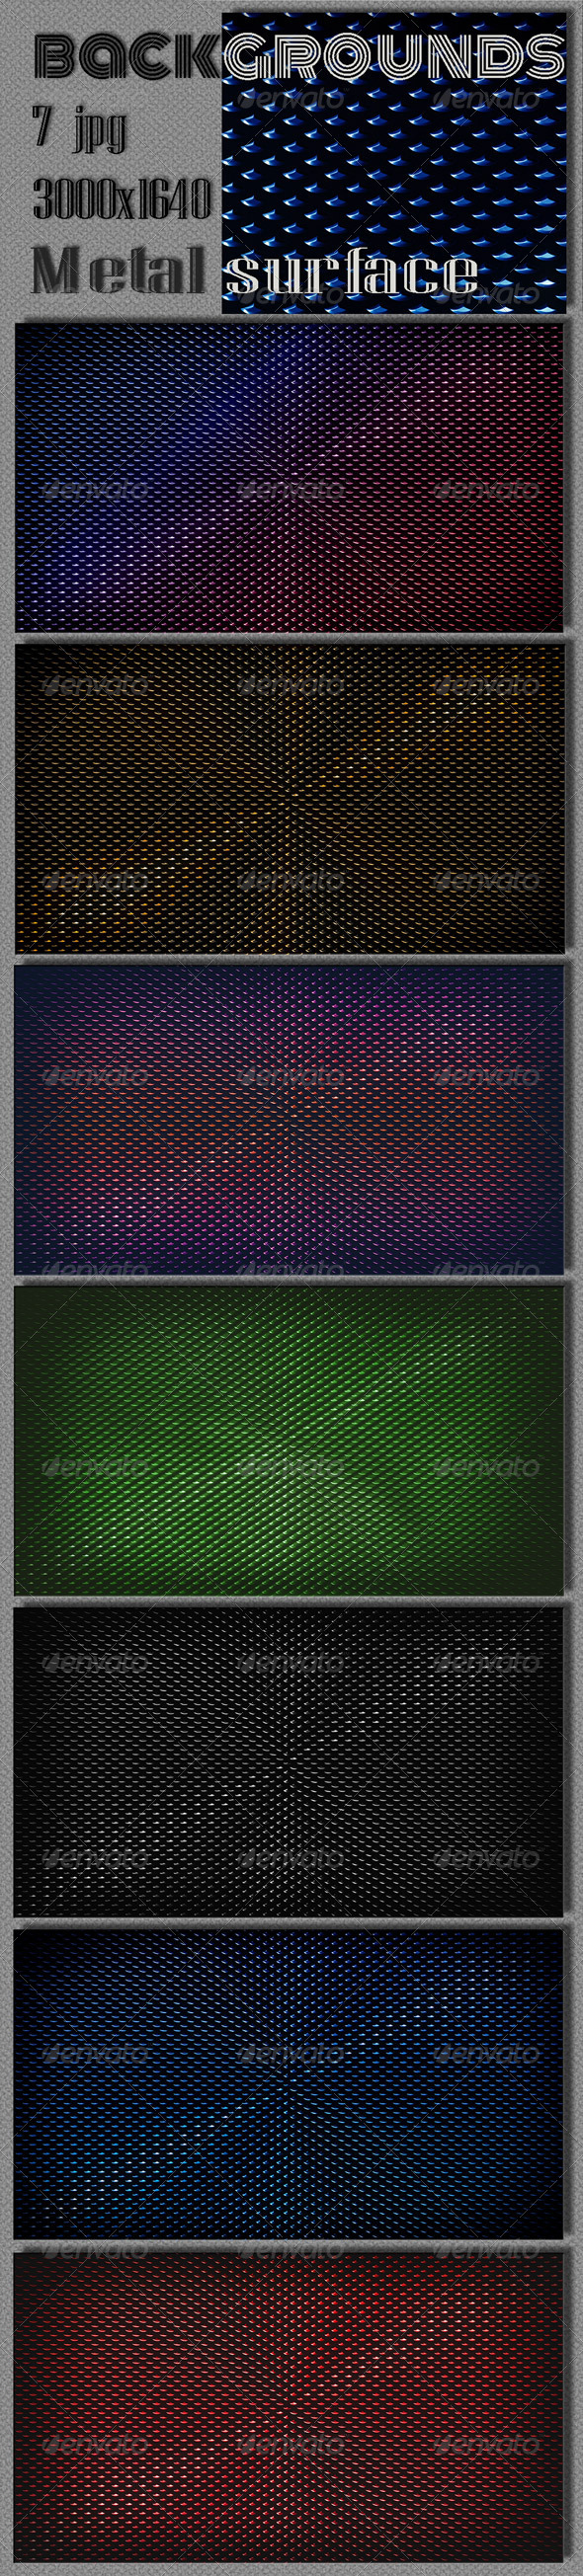 Dark Metal Surface Background - Tech / Futuristic Backgrounds